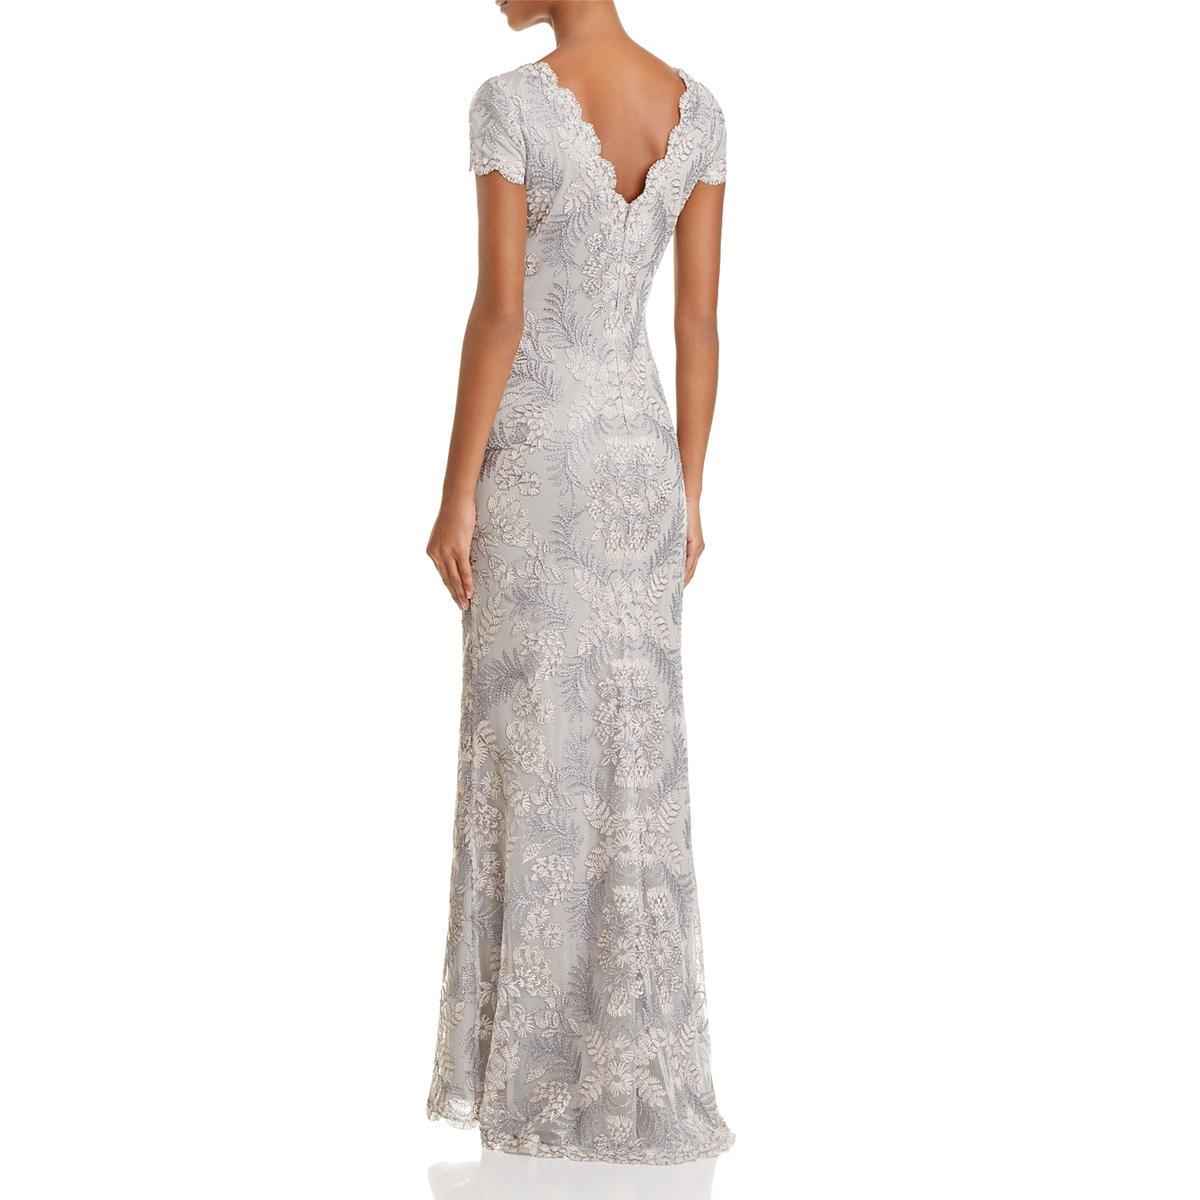 Tadashi Shoji Womens V-Neck Short Sleeves Gown Evening Dress BHFO ...